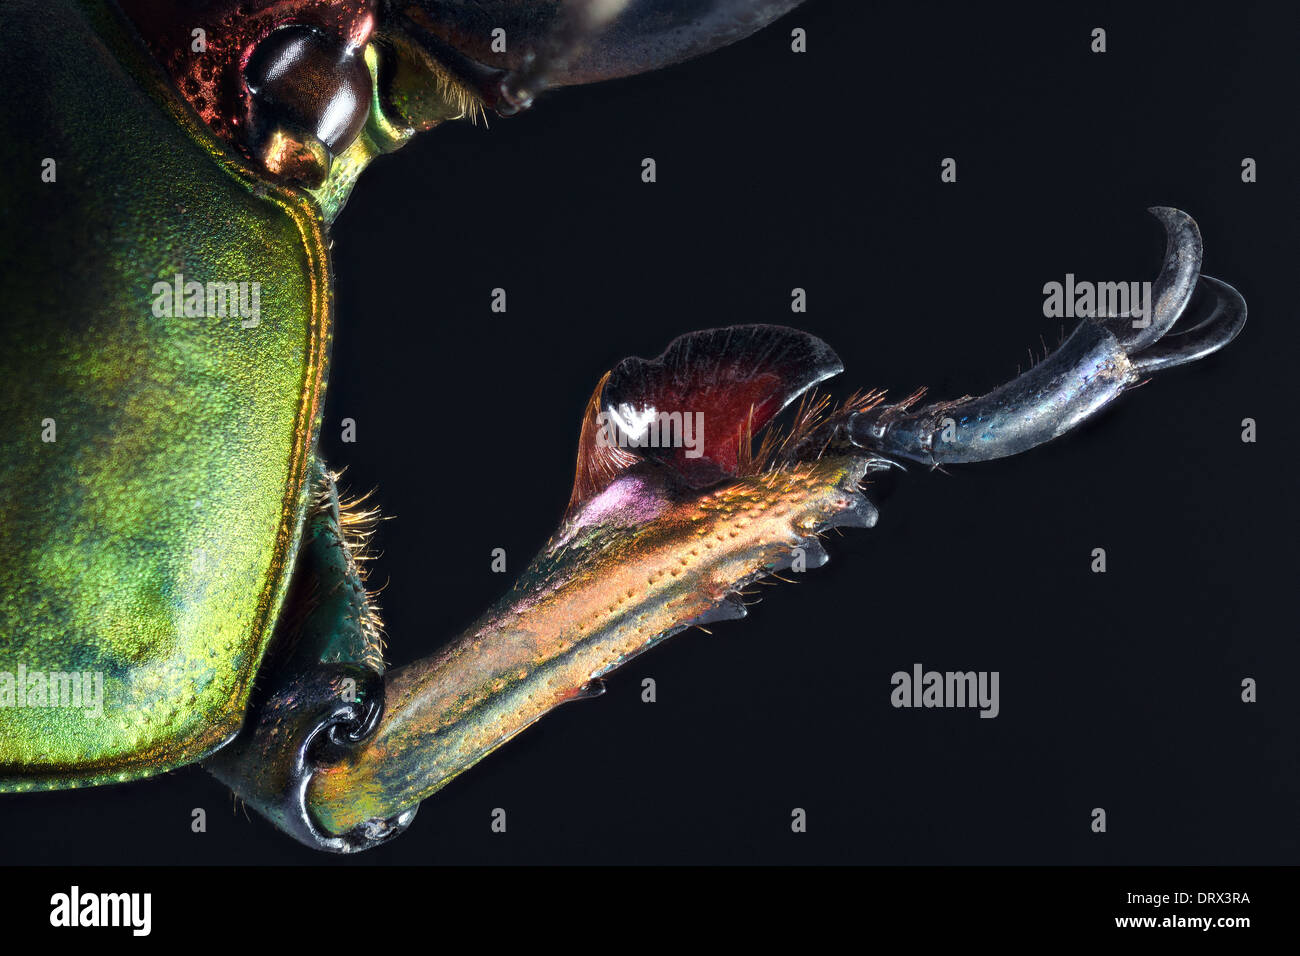 Lamprima adolphinae male: view of anterior right paw - Stock Image